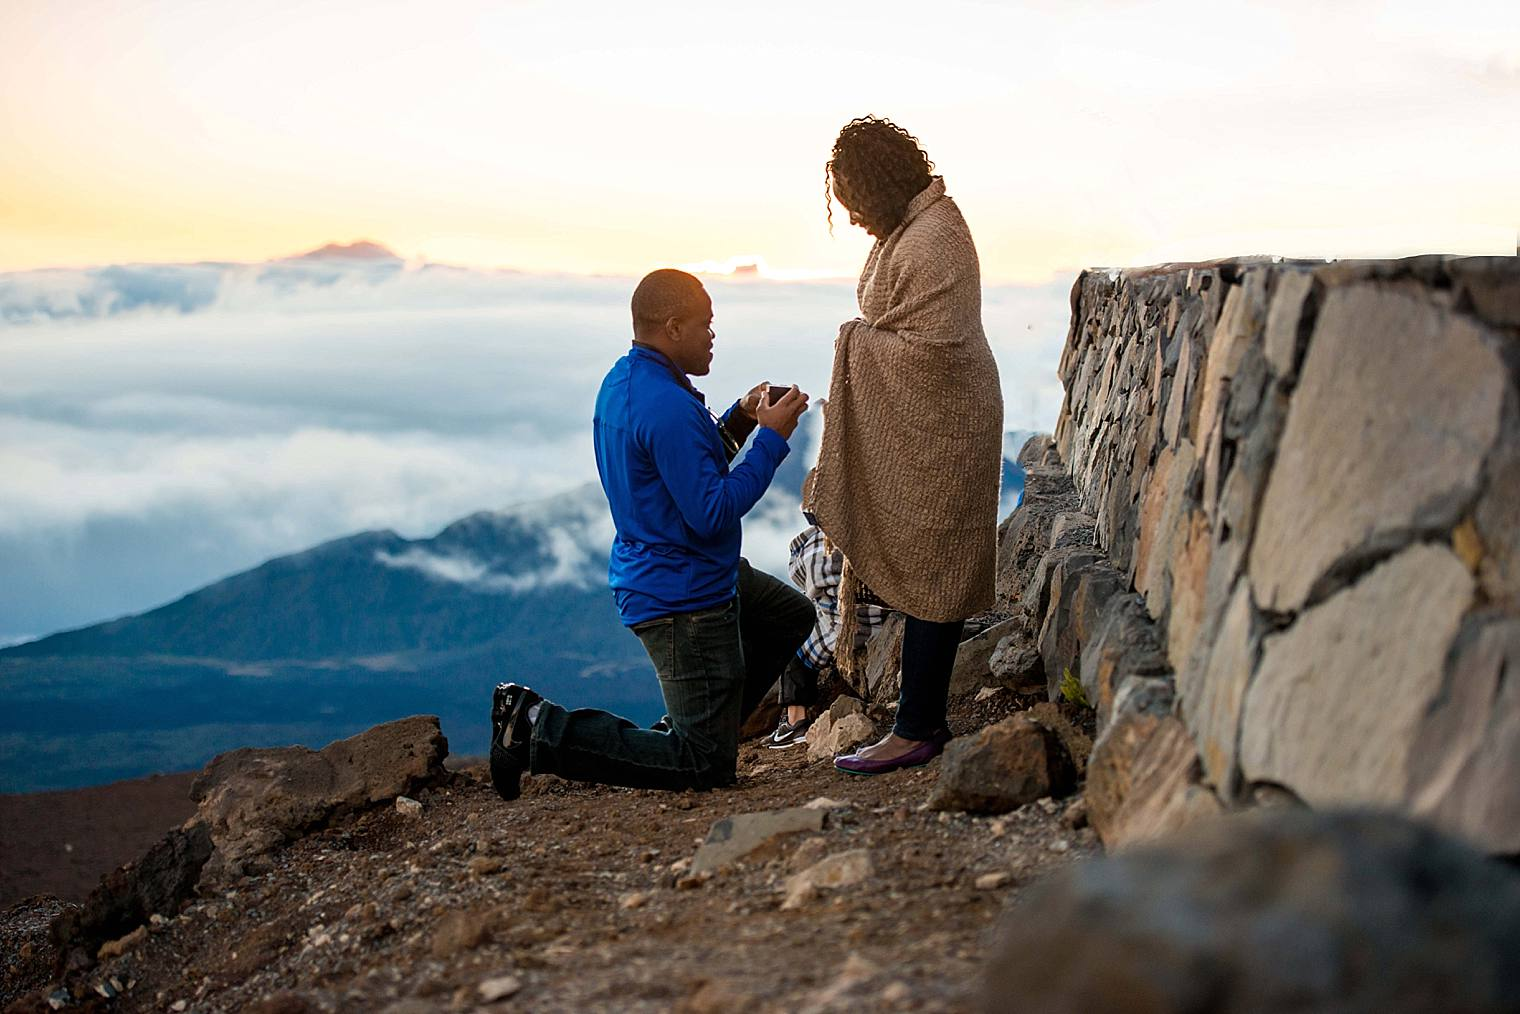 Prosbert + Giselle | Haleakala Sunrise Proposal Photographer